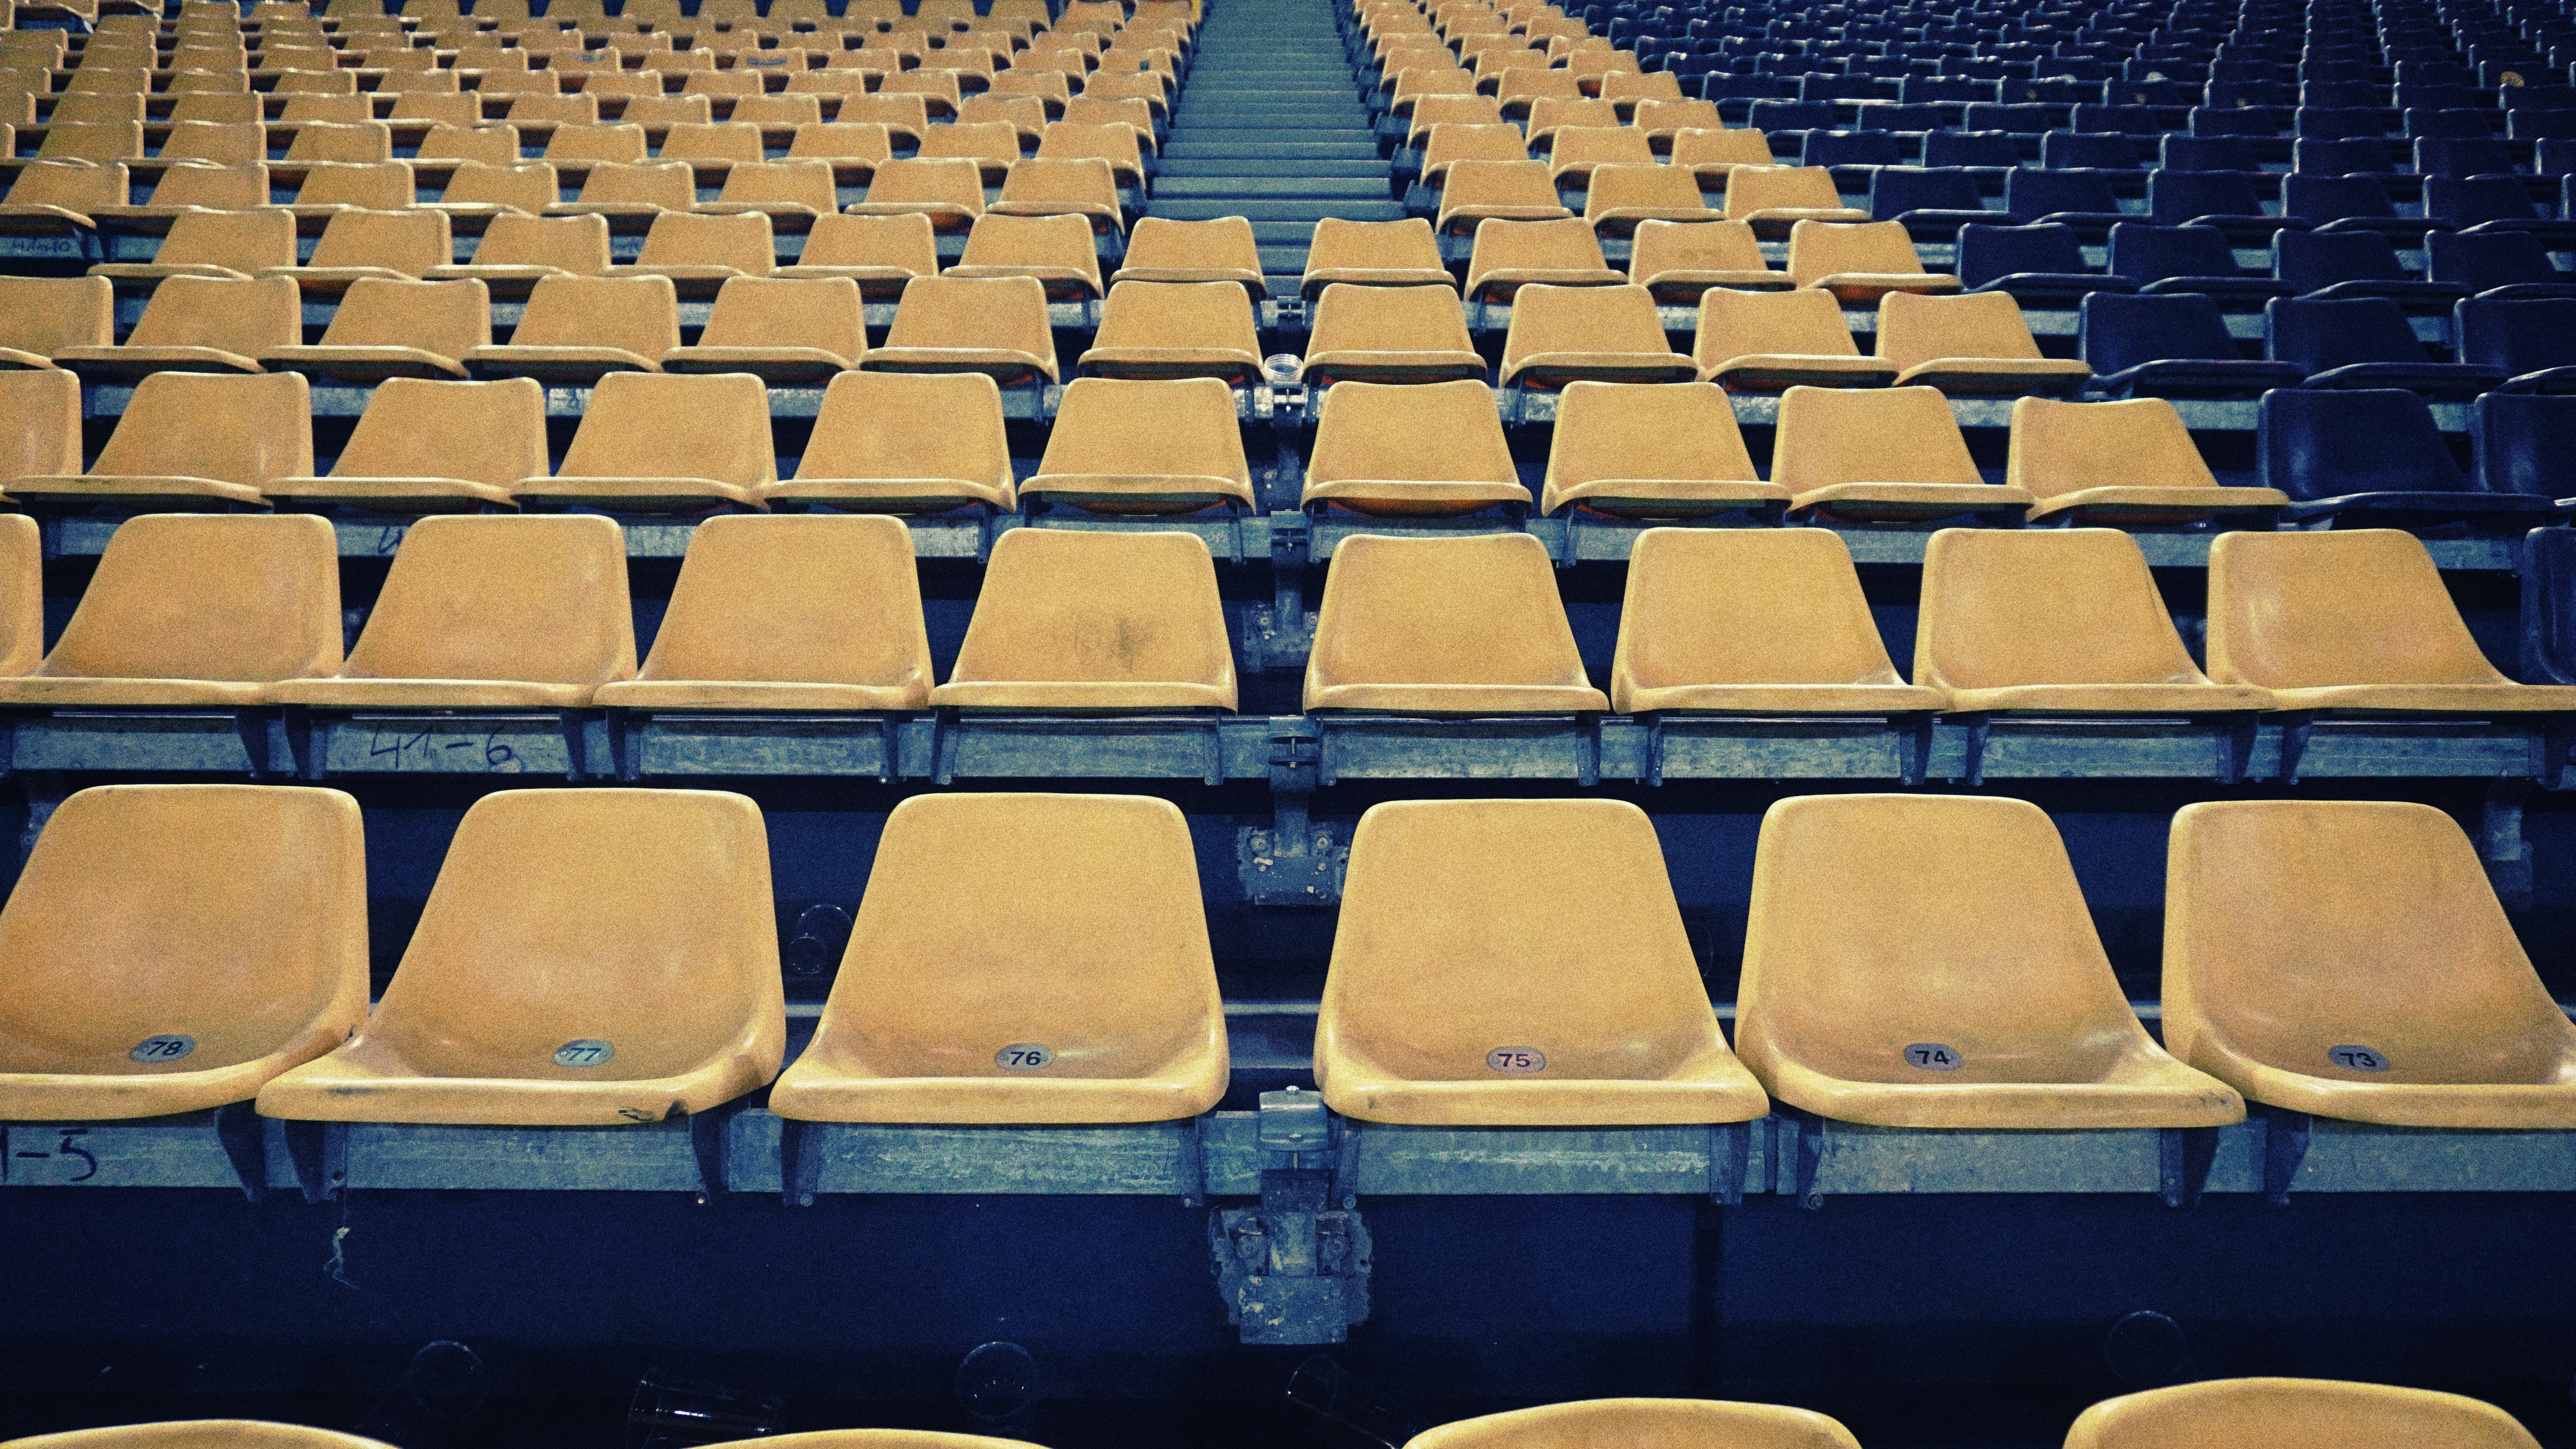 empty stage seats